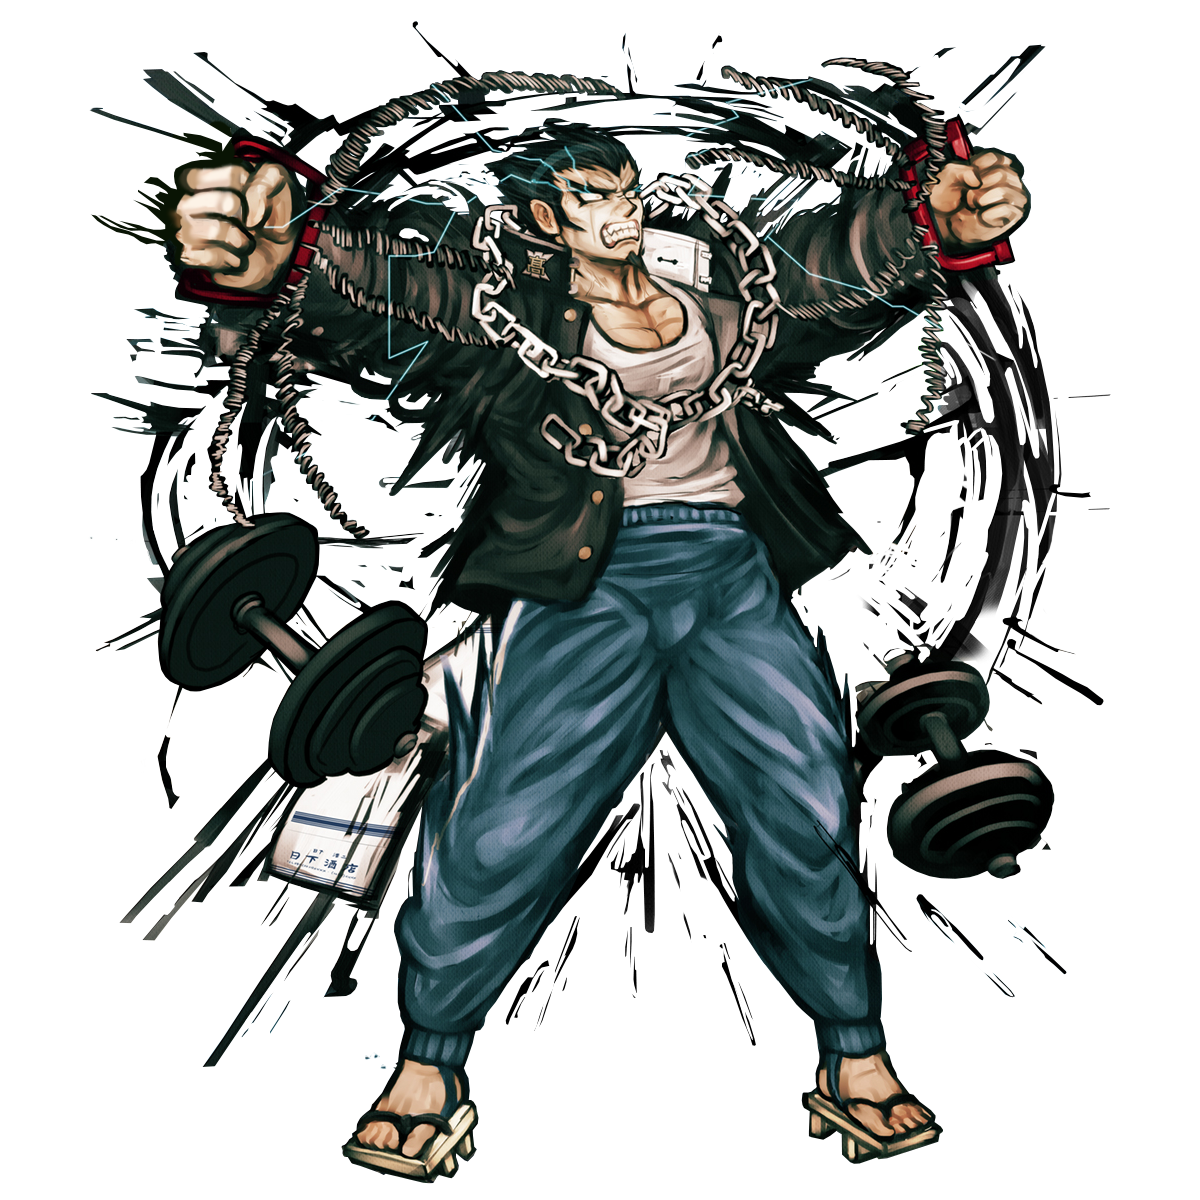 Nekomaru Nidai | Danganronpa Wiki | FANDOM powered by Wikia